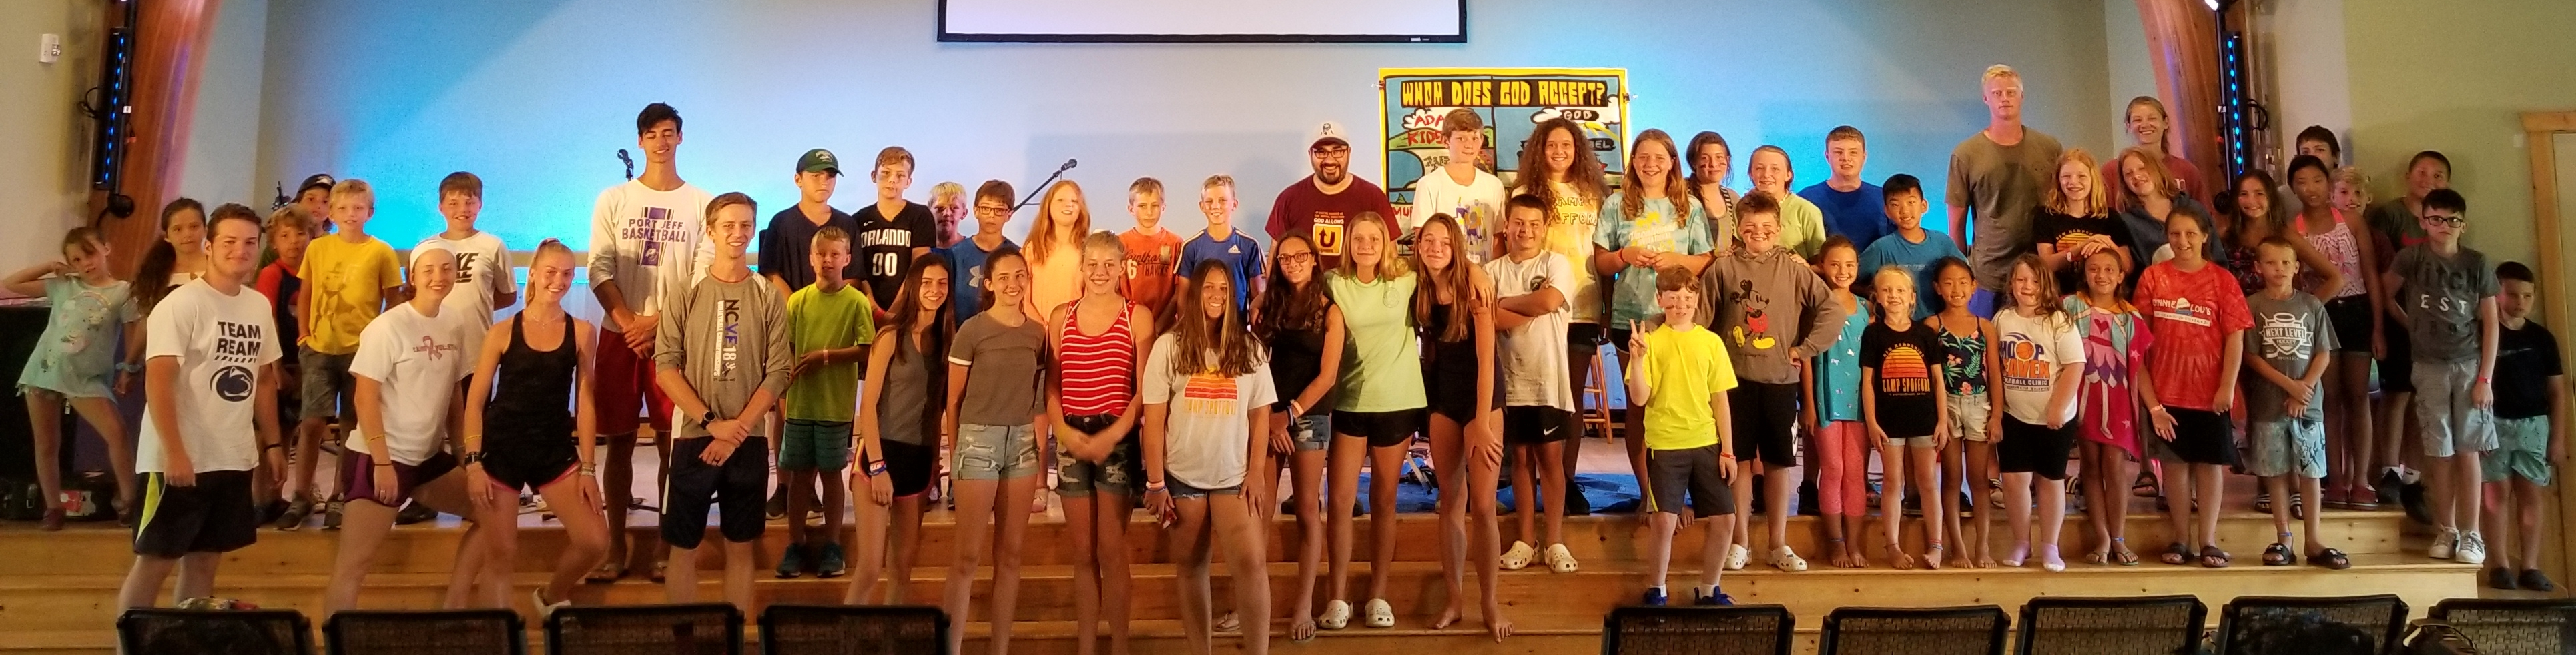 And these are the AMAZING kiddos (and Teen Counselors) I got to teach this amazing week. Let's definitely be praying for this new generation.